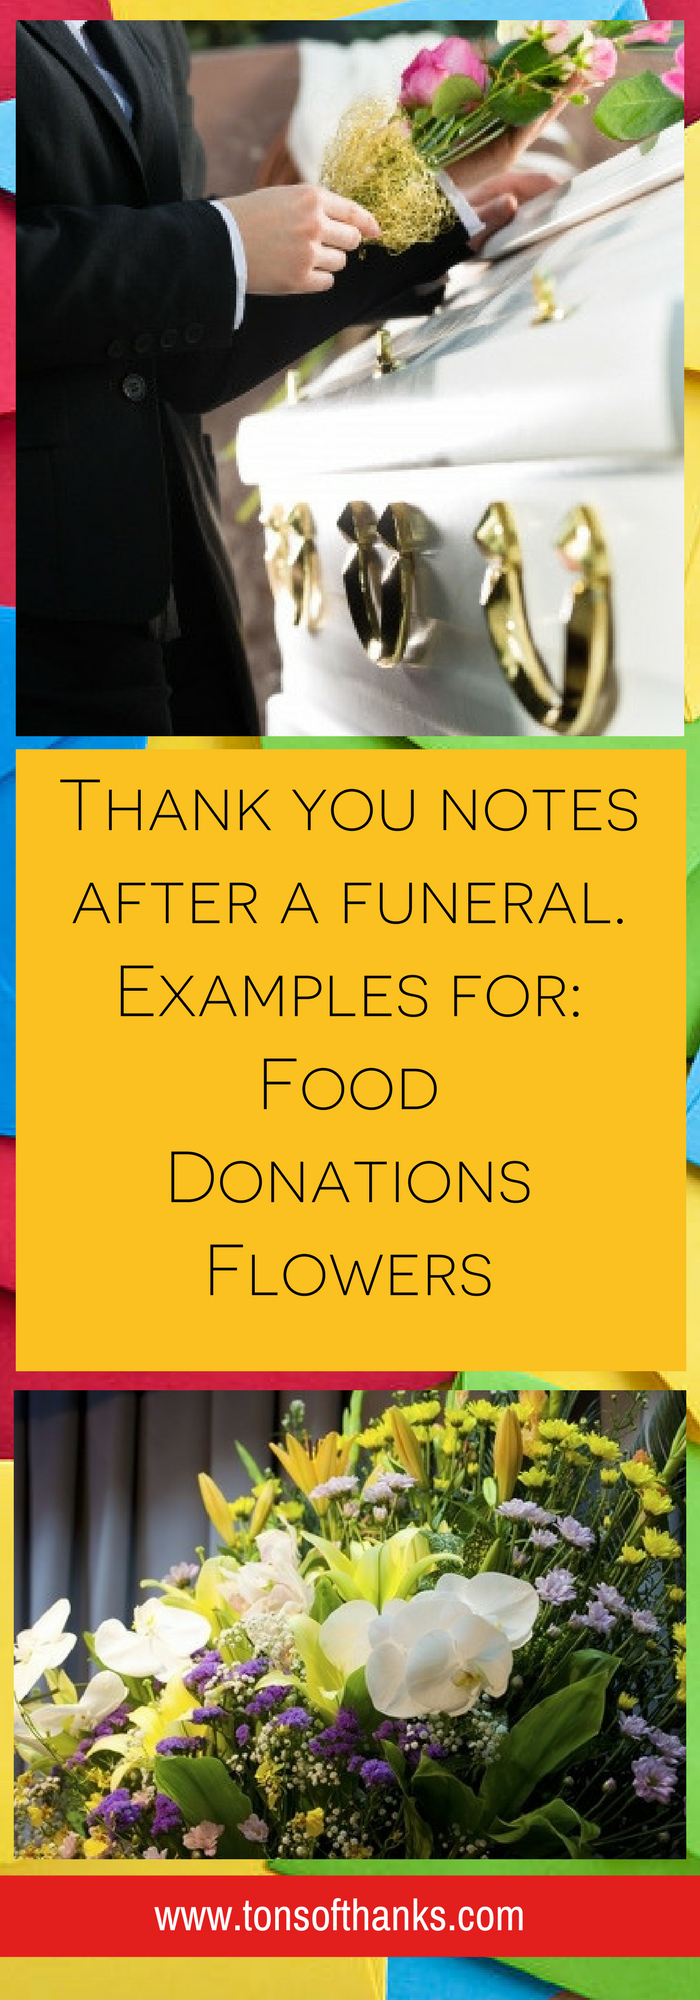 43 funeral thank you note wording examples country wisdom simple thank you note wording examples for after funeral for flowers donations and food examples for helping you know what to say in your thank you notes izmirmasajfo